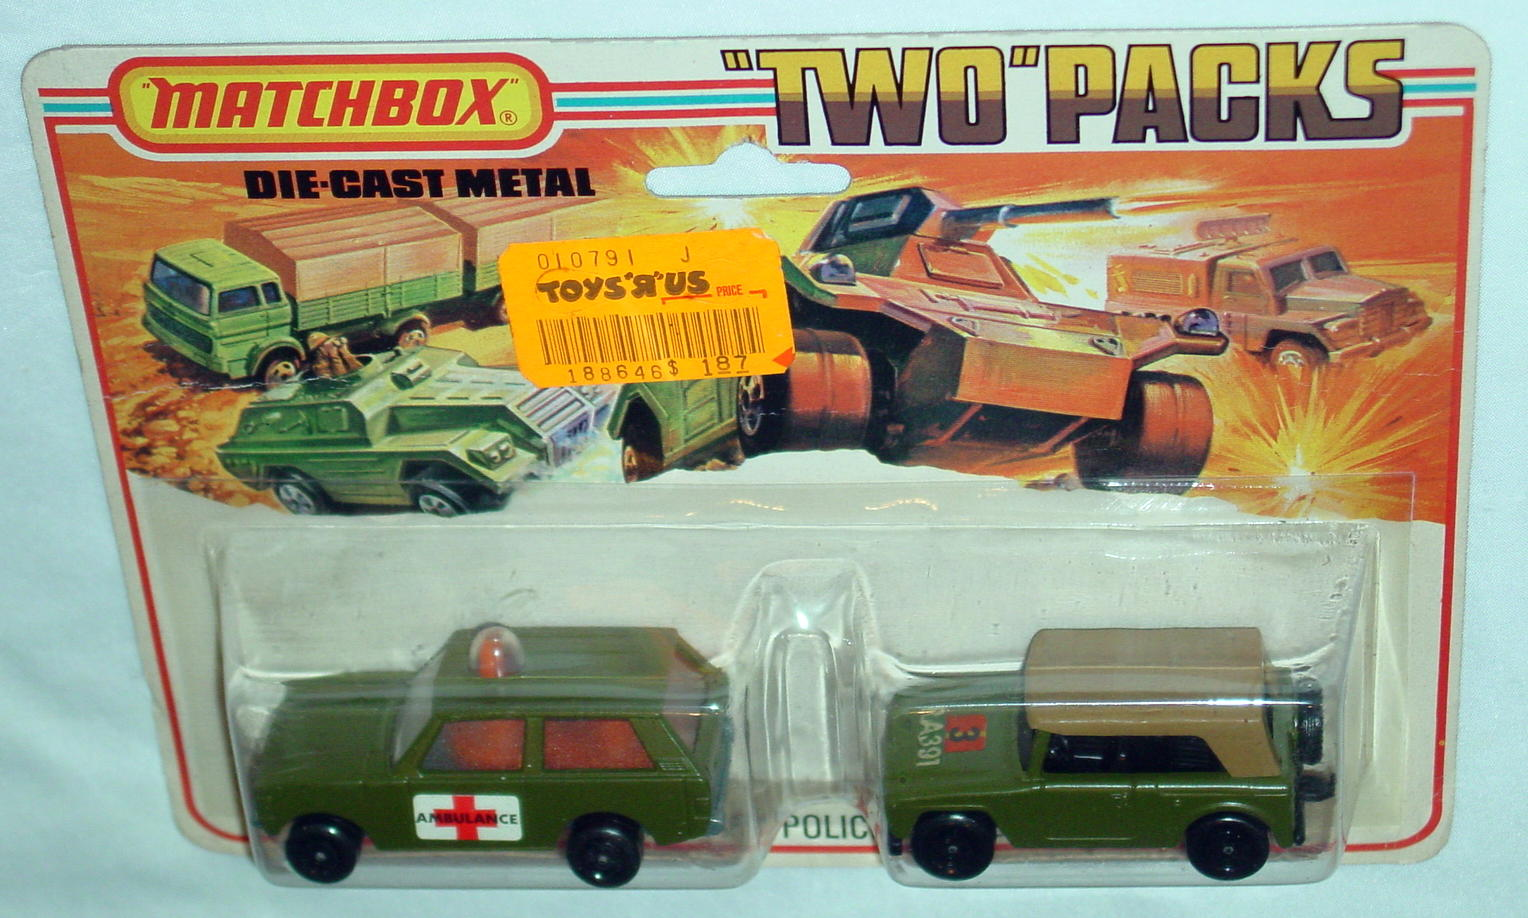 Twin Pack 12 A 4 - olive 20B15 Police 18A5 Field Car C9+ Tall card